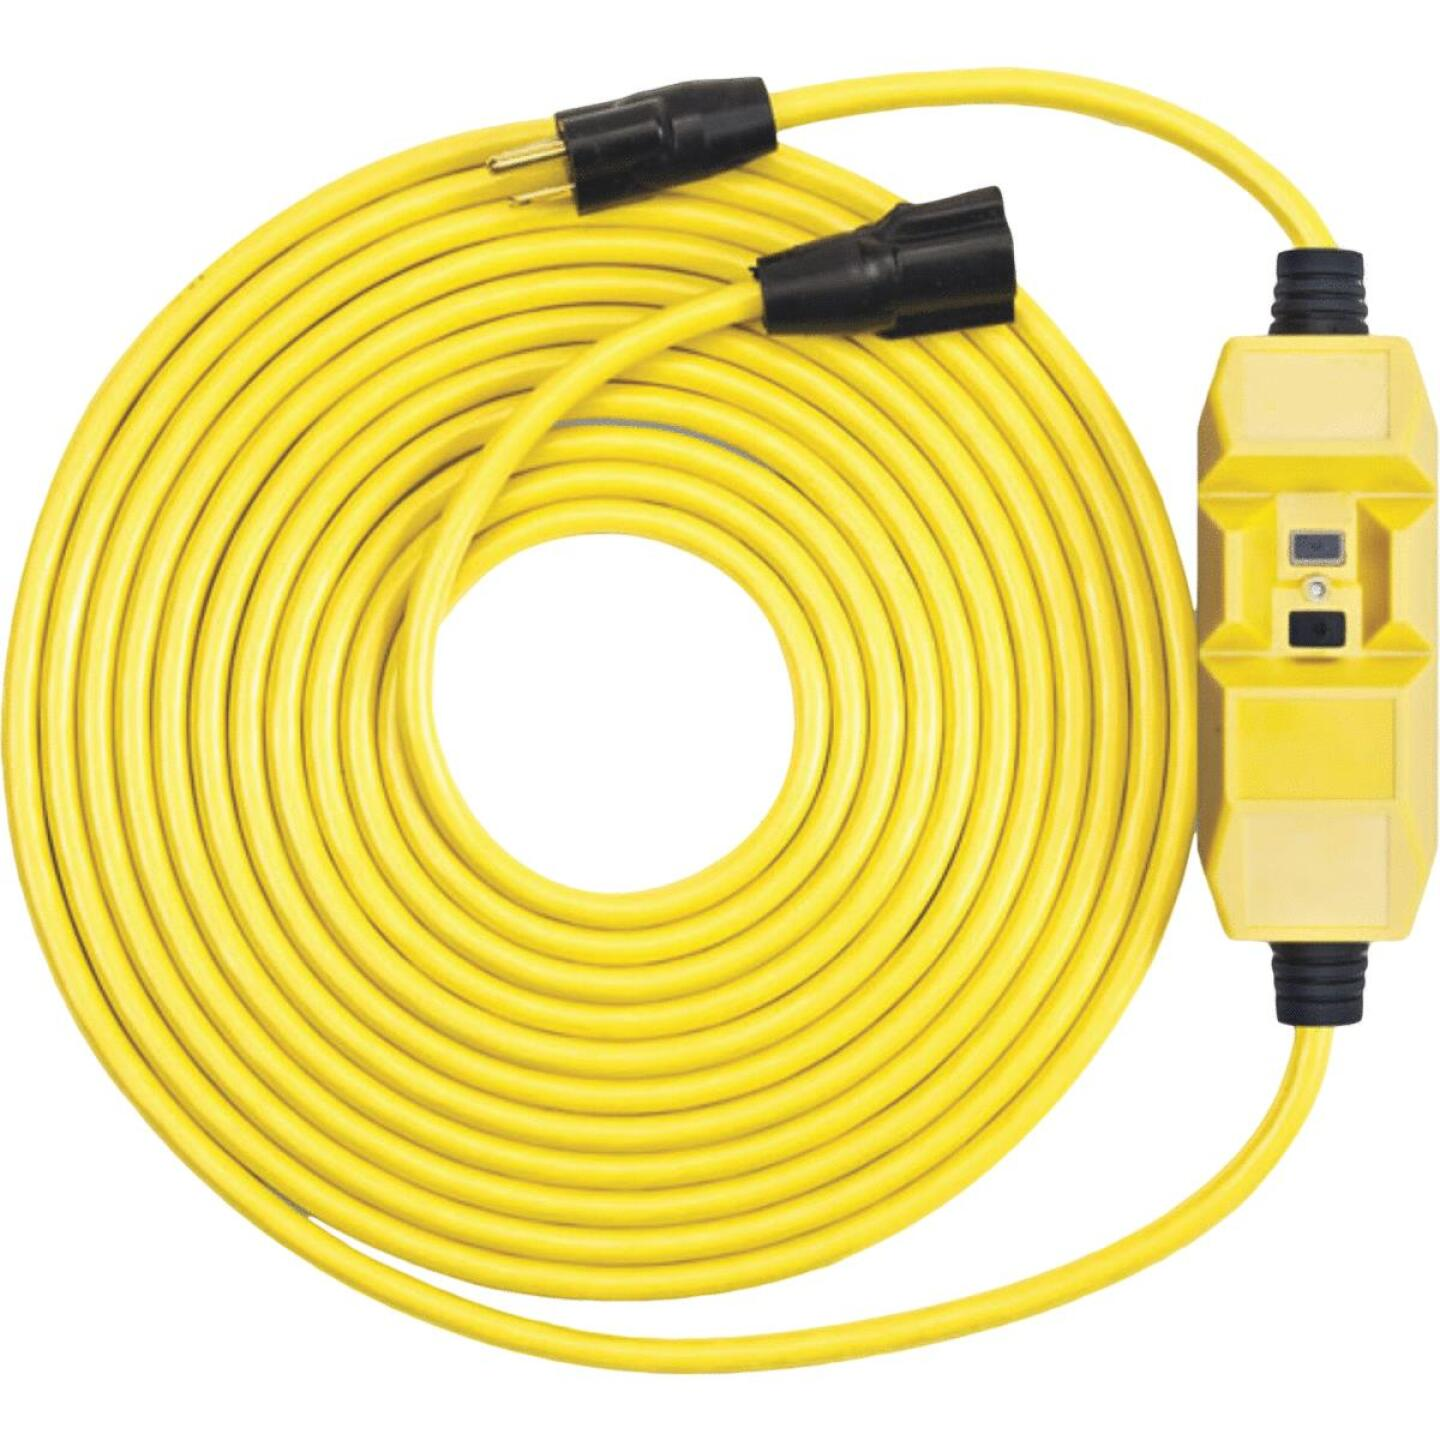 Southwire 50 Ft. 12/3 Heavy-Duty GFCI In-Line Extension Cord Image 1